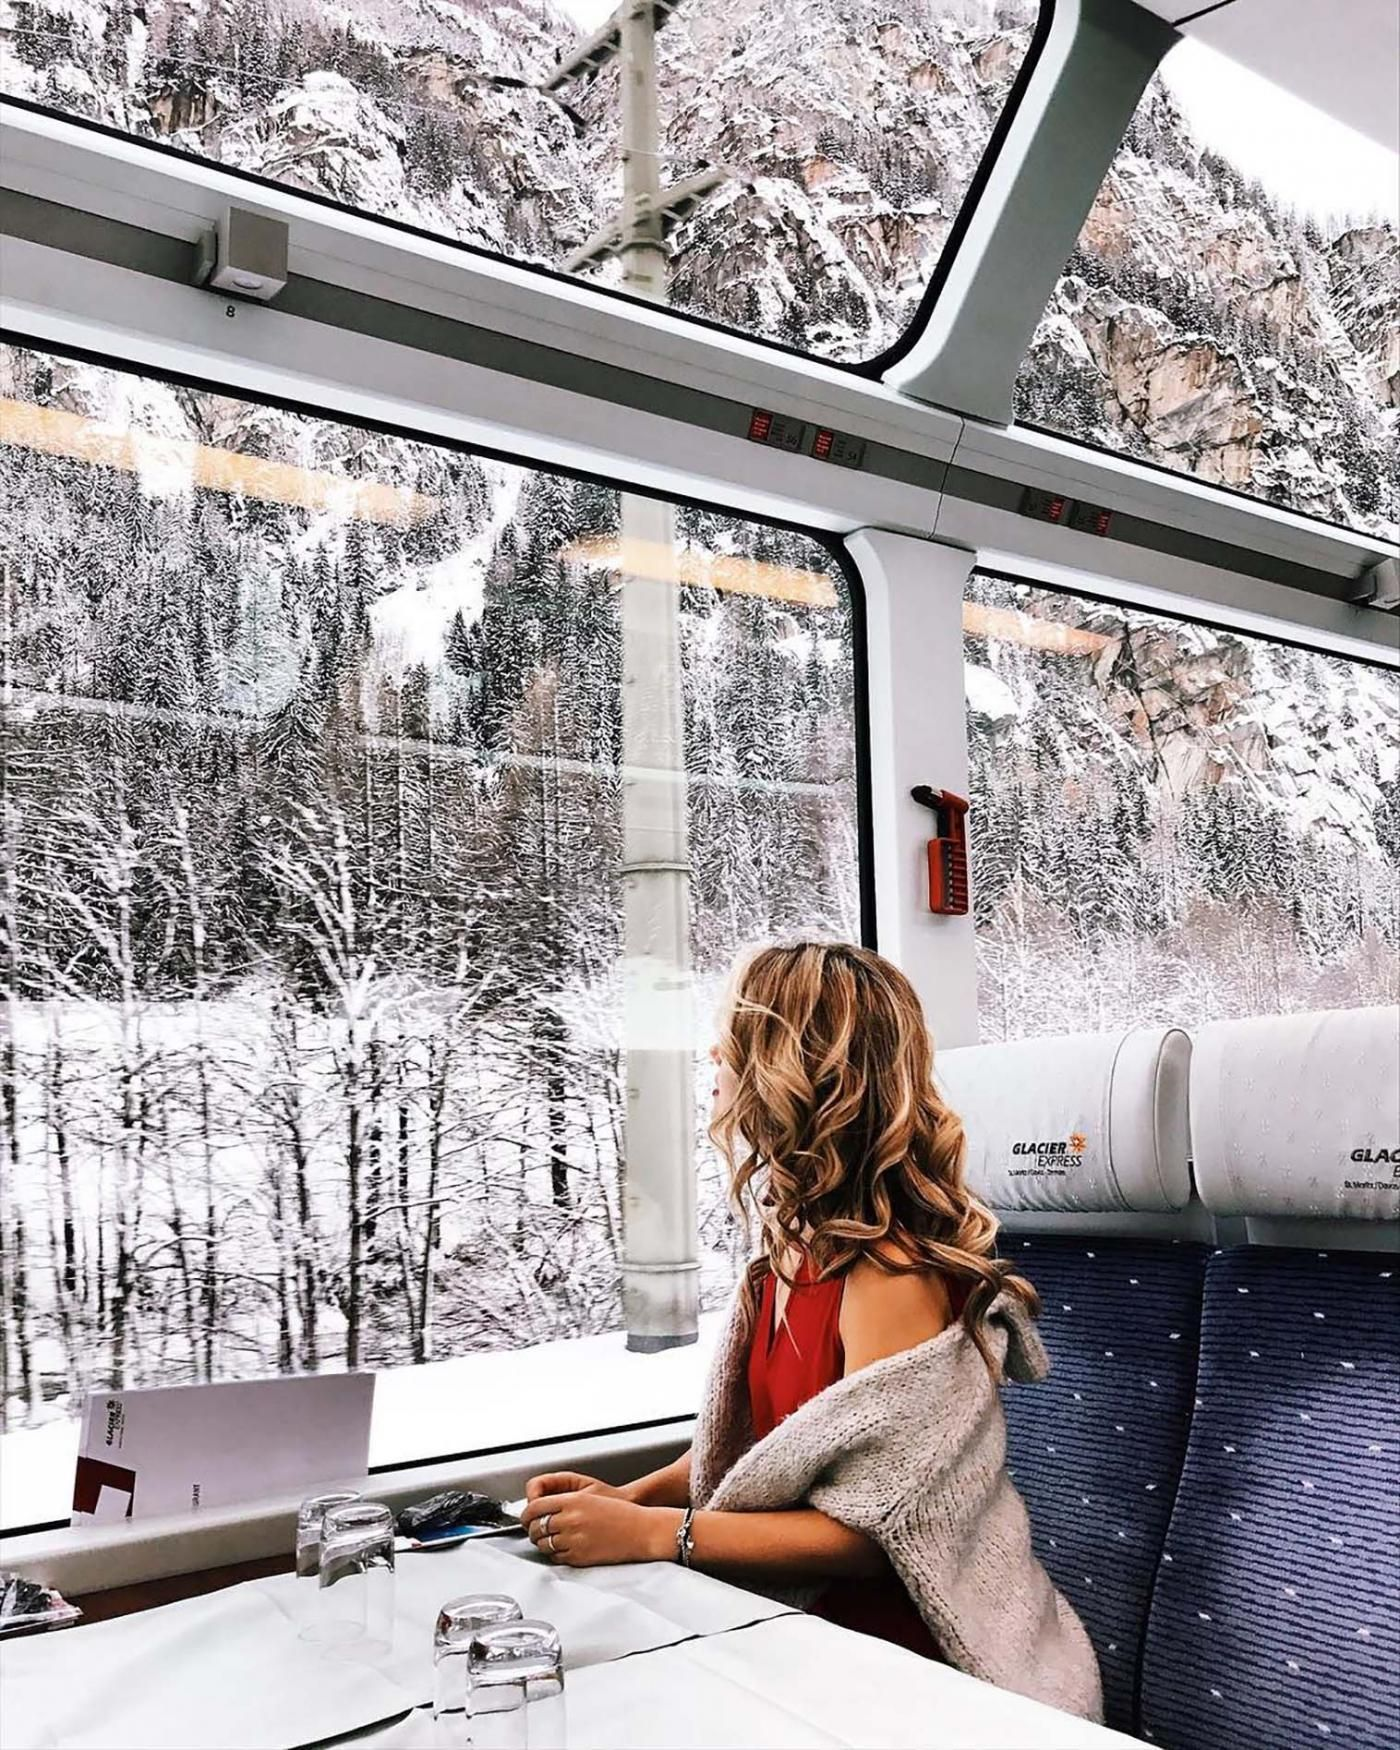 We Can Hardly Believe This Train Ride Through the Swiss Alps Is Real